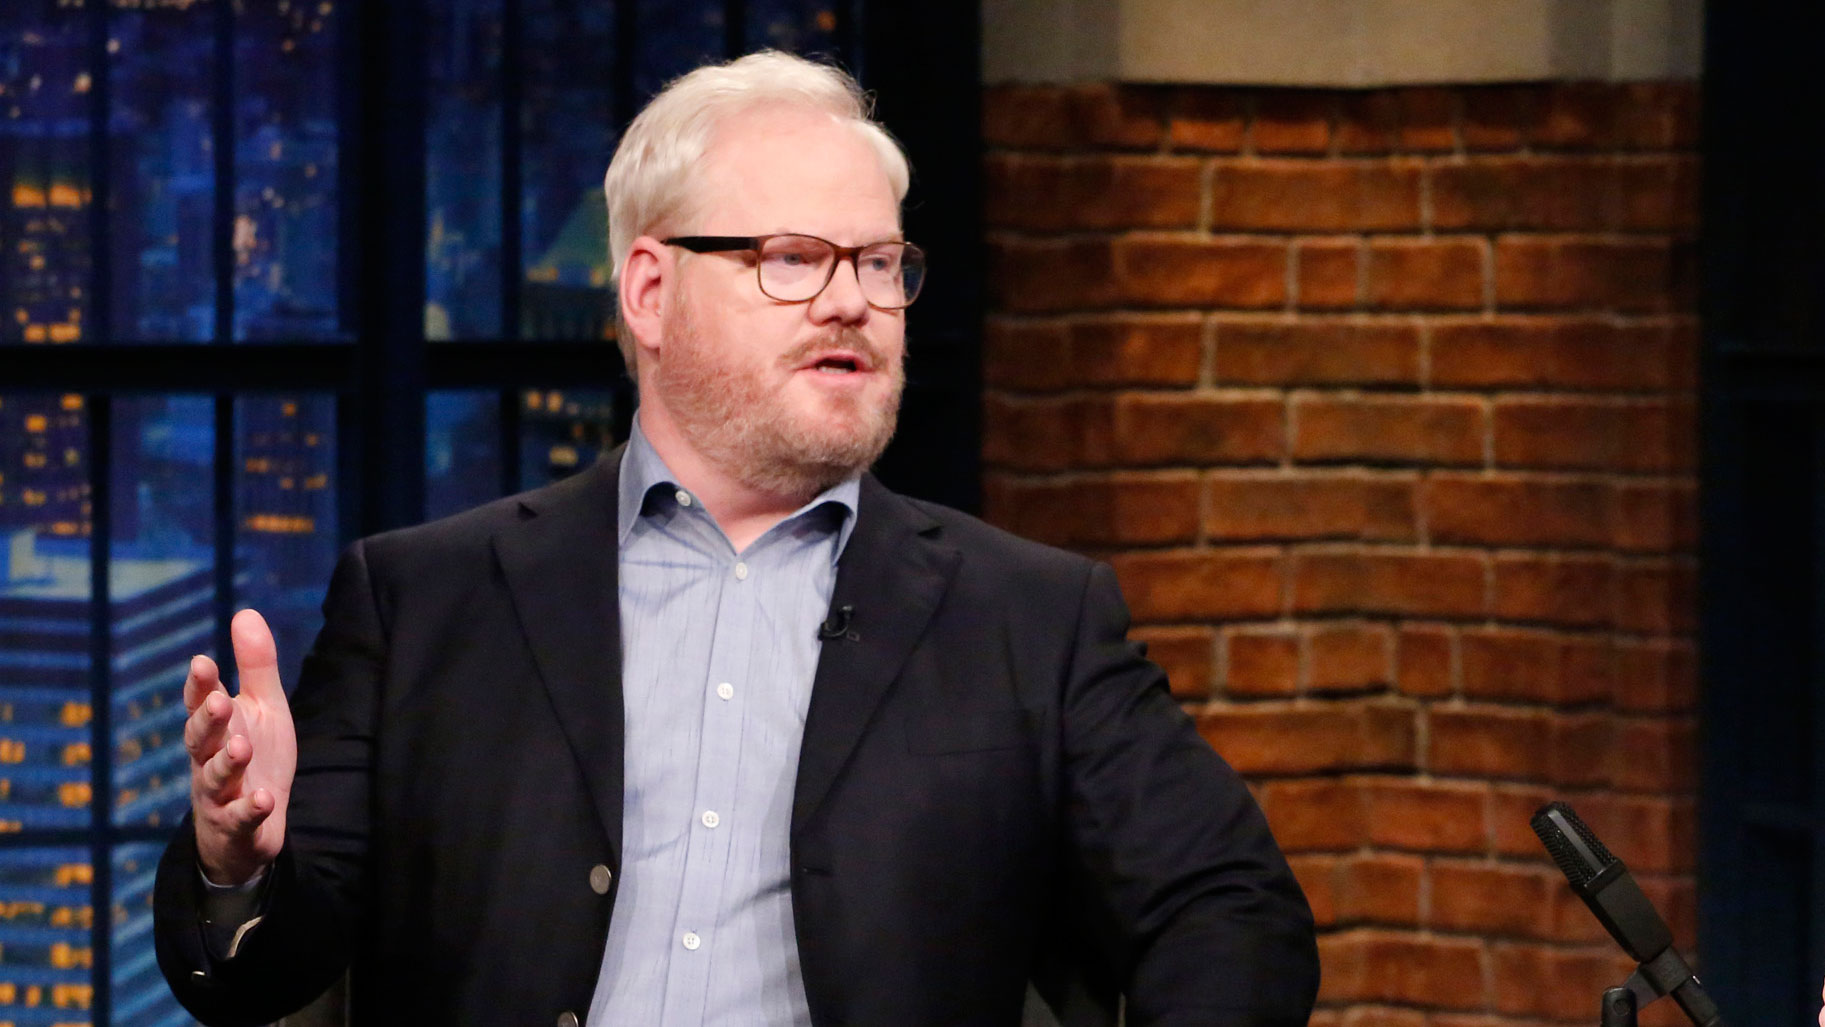 Watch Late Night with Seth Meyers Interview: Jim Gaffigan Has Mixed ...